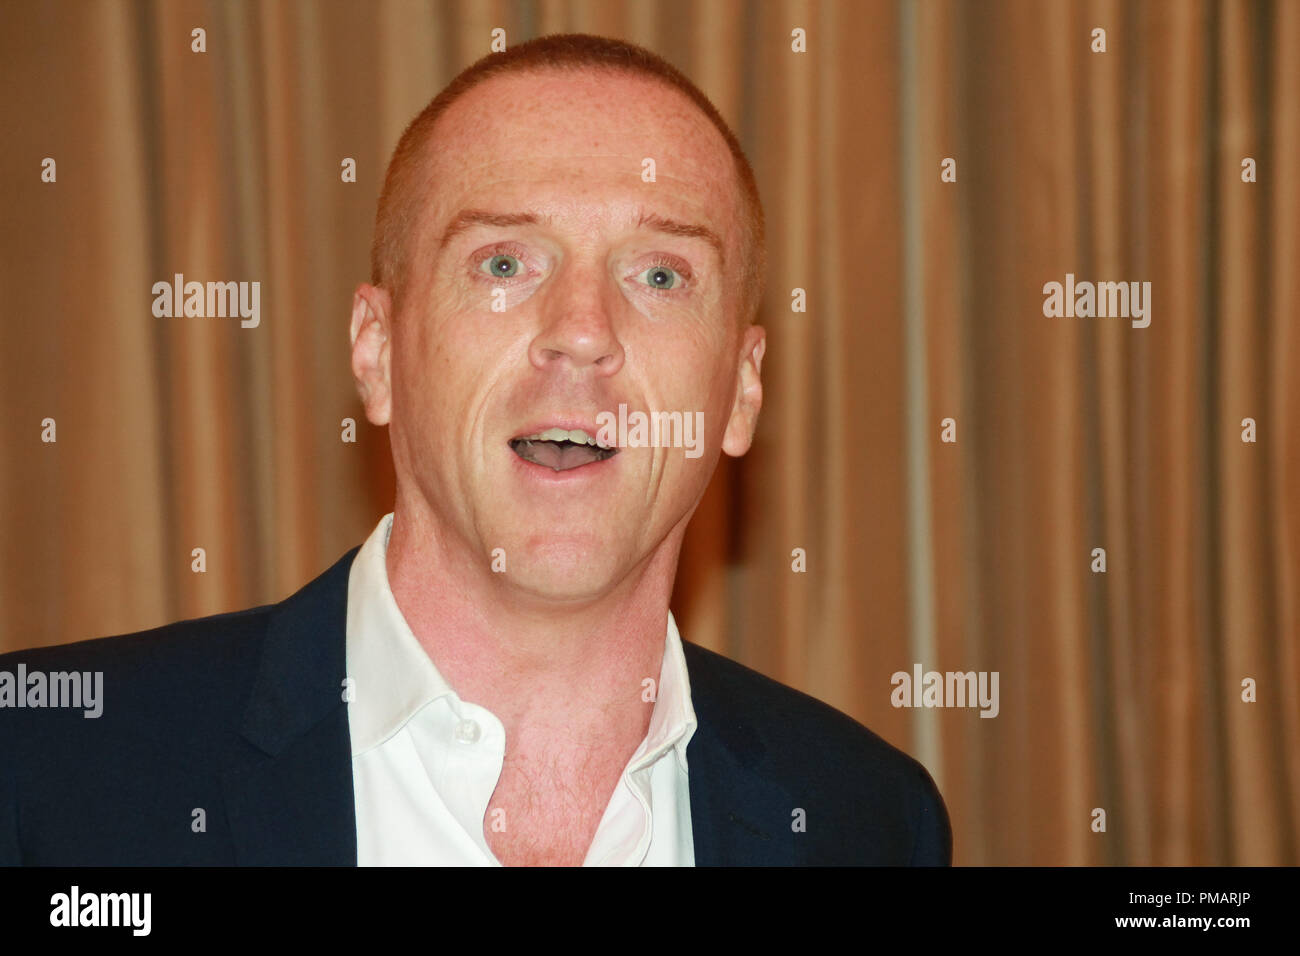 Damian Lewis 'Homeland' TV Series Portrait Session, July 29, 2013. Reproduction by American tabloids is absolutely forbidden. File Reference # 32070_021JRC  For Editorial Use Only -  All Rights Reserved - Stock Image